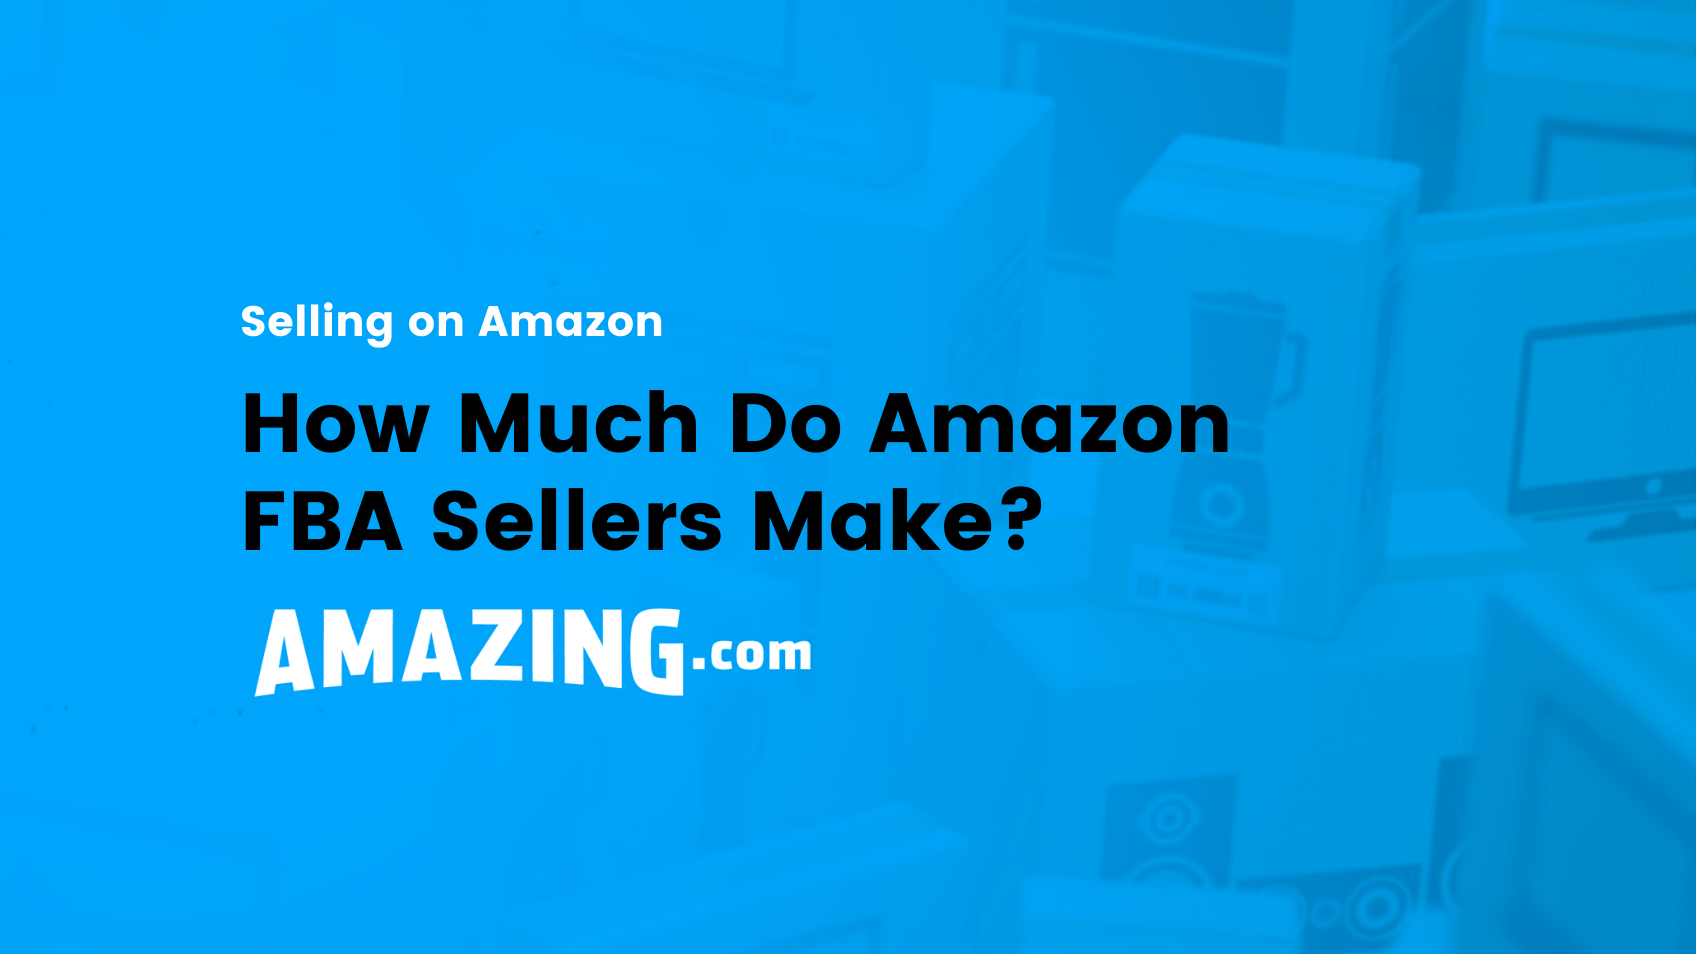 featured image:How Much Do Amazon FBA Sellers Make?